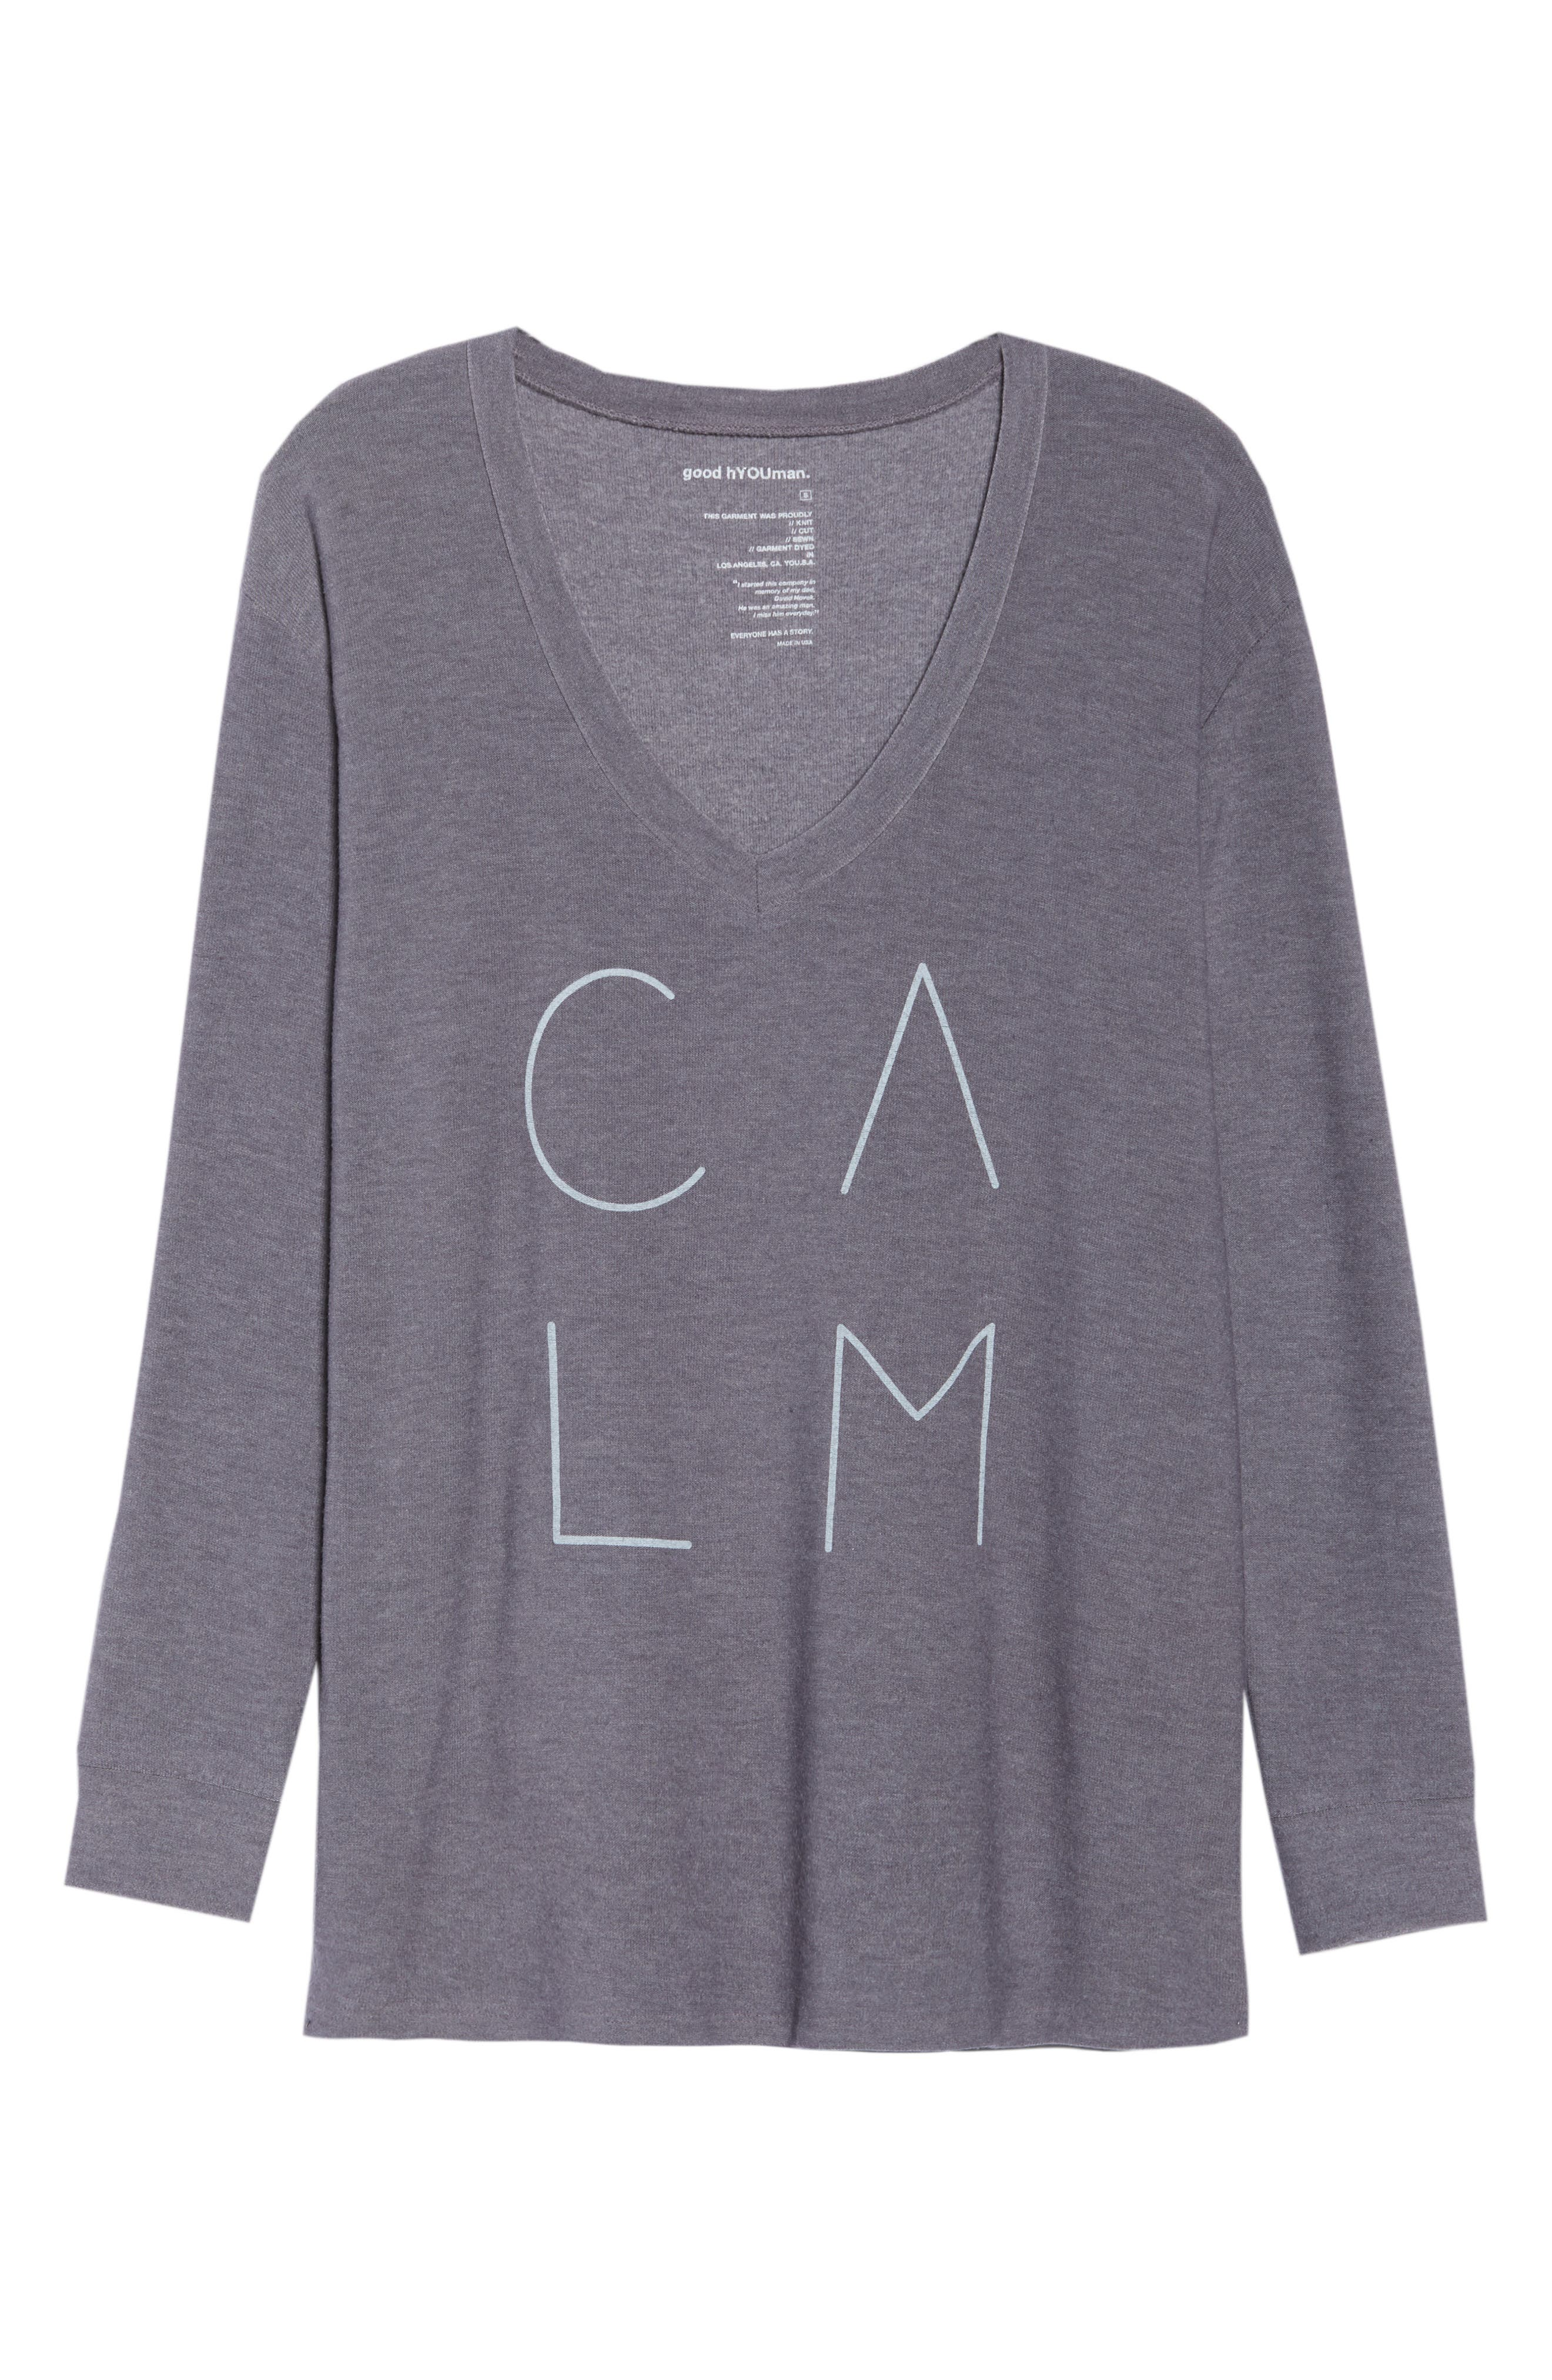 Robin Calm Sweater,                             Alternate thumbnail 7, color,                             CHARCOAL